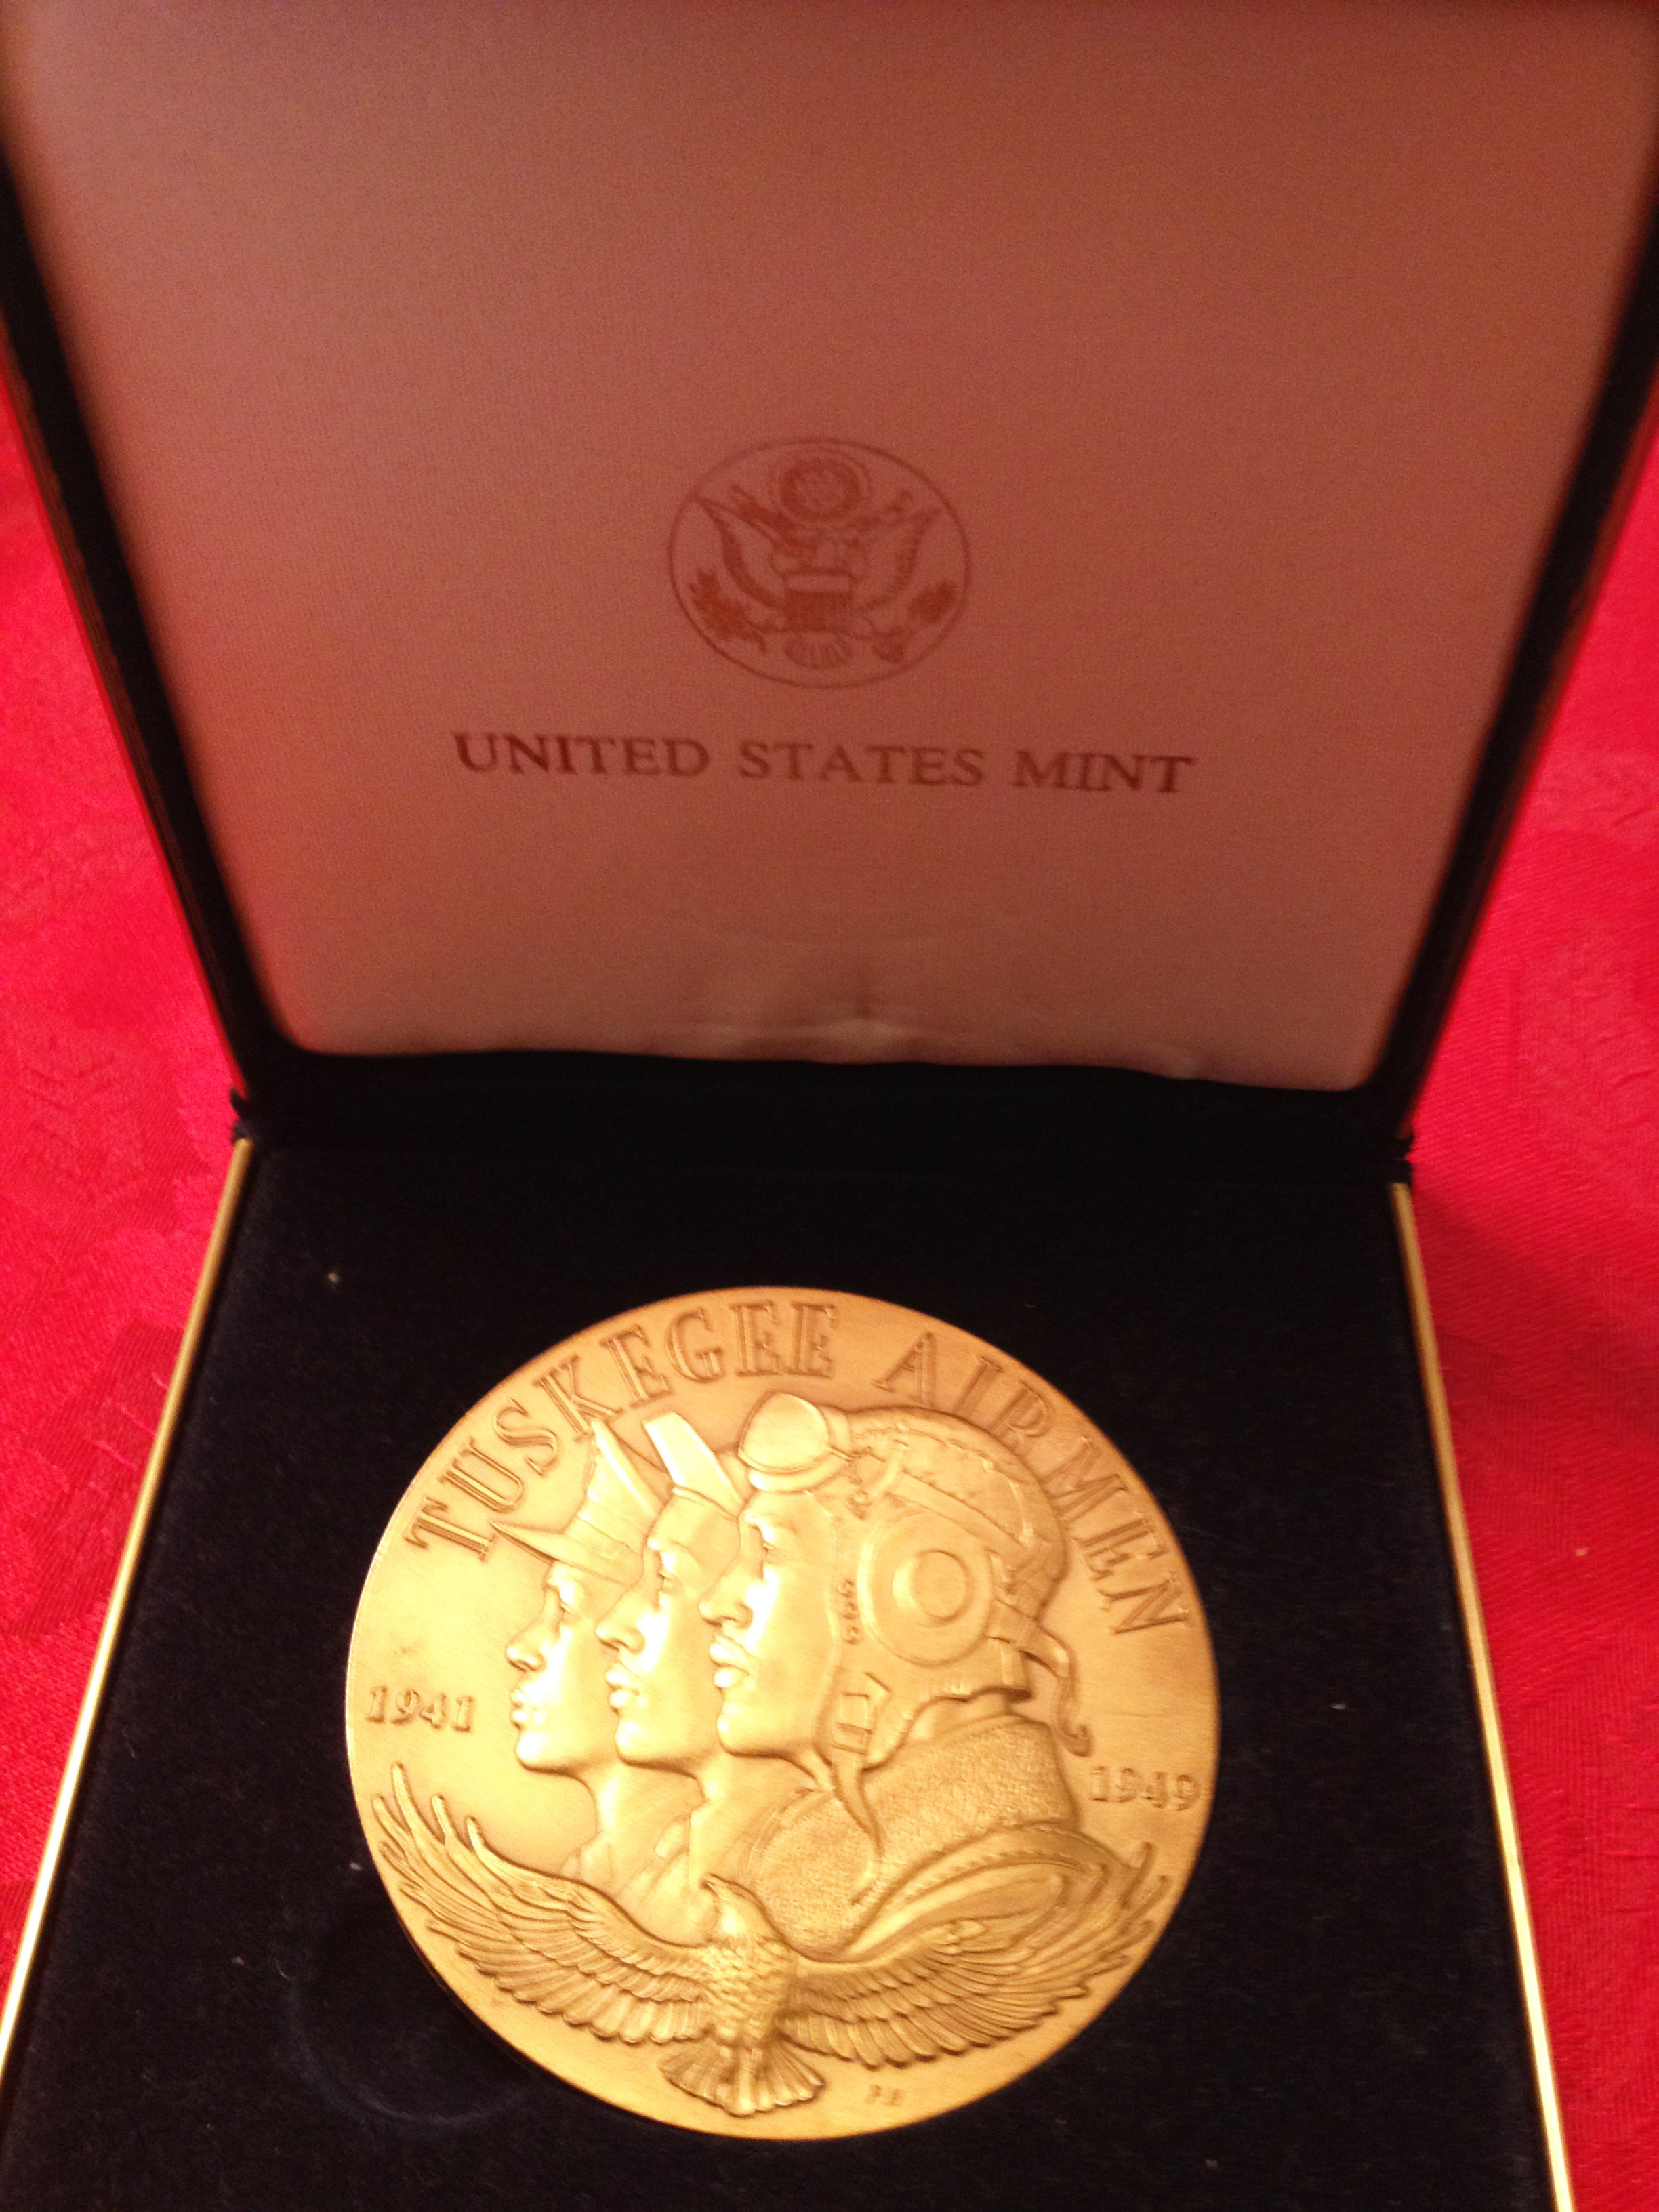 dc8bea0552f7371fe45d_Congressional_Gold_Medal_front.jpg